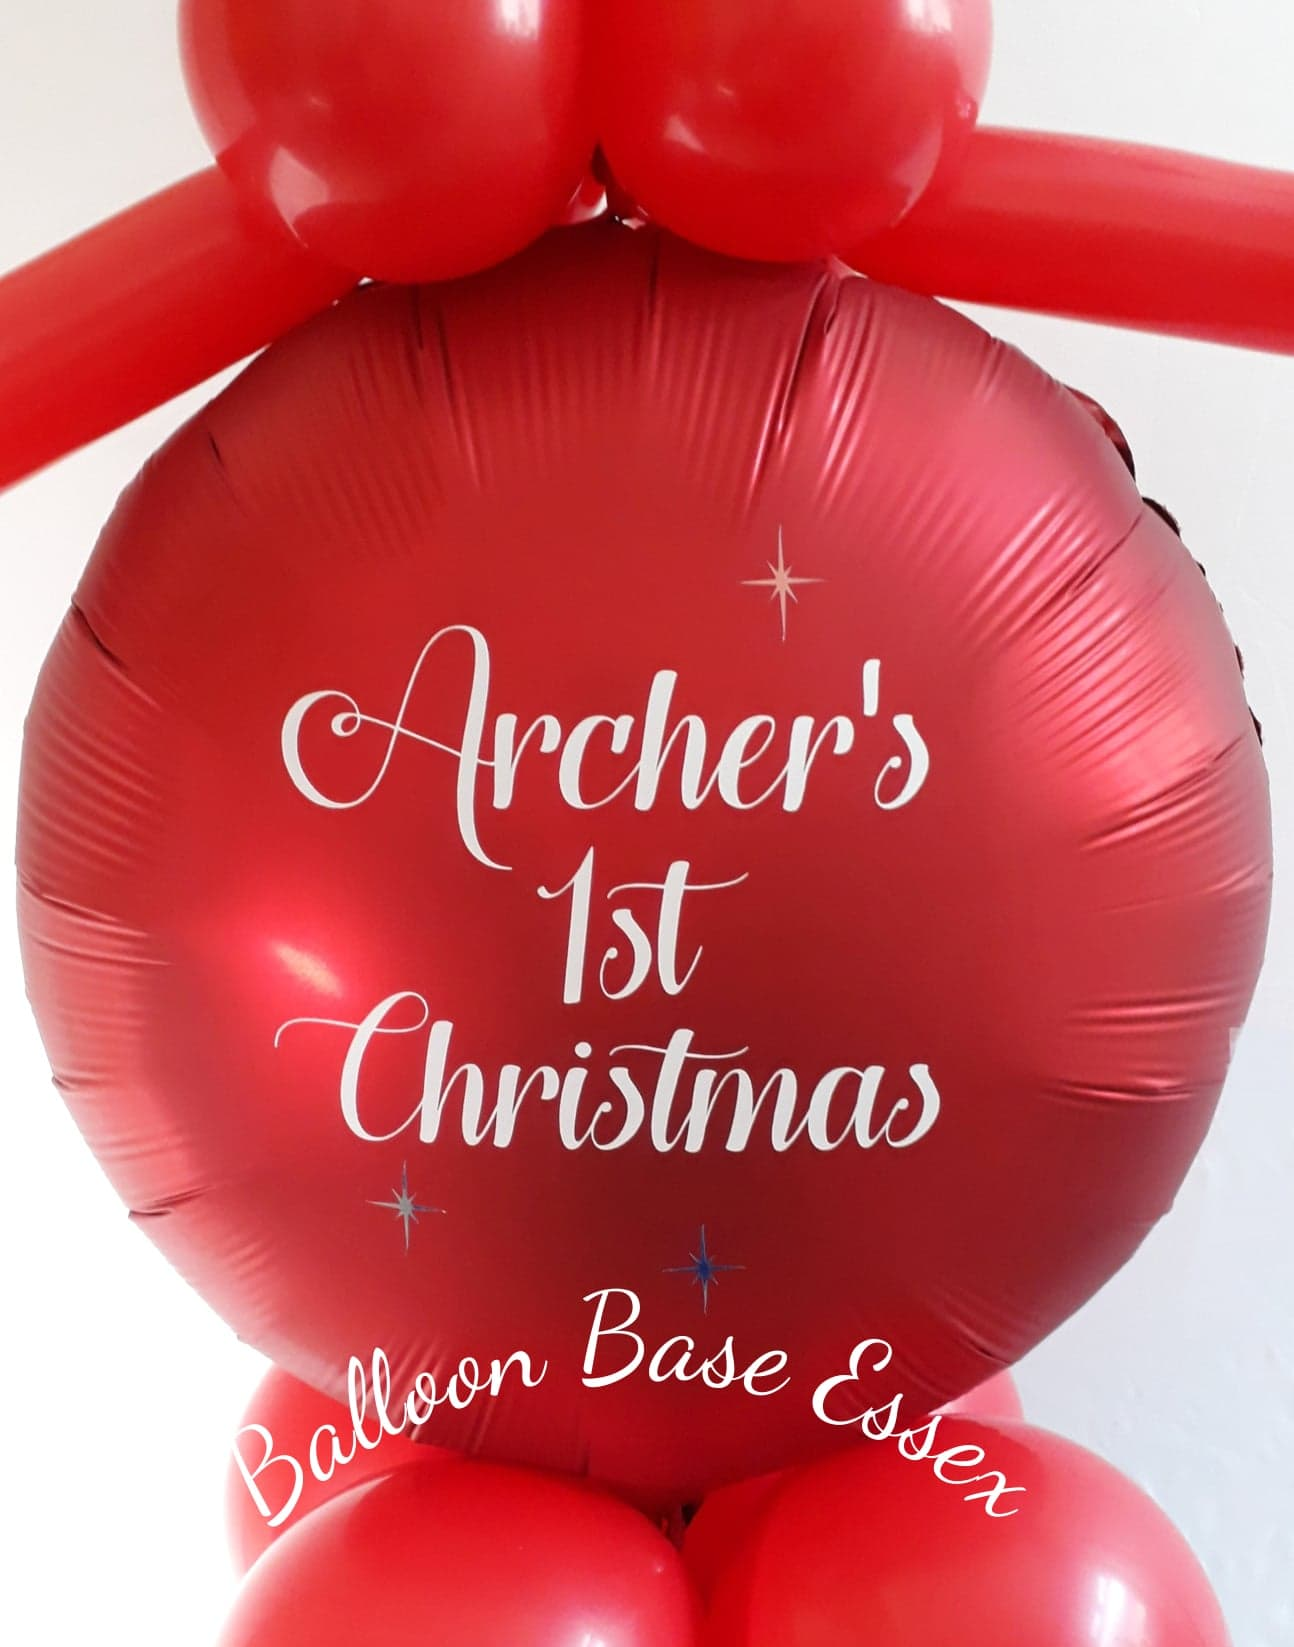 Red balloon with 1st Christmas message